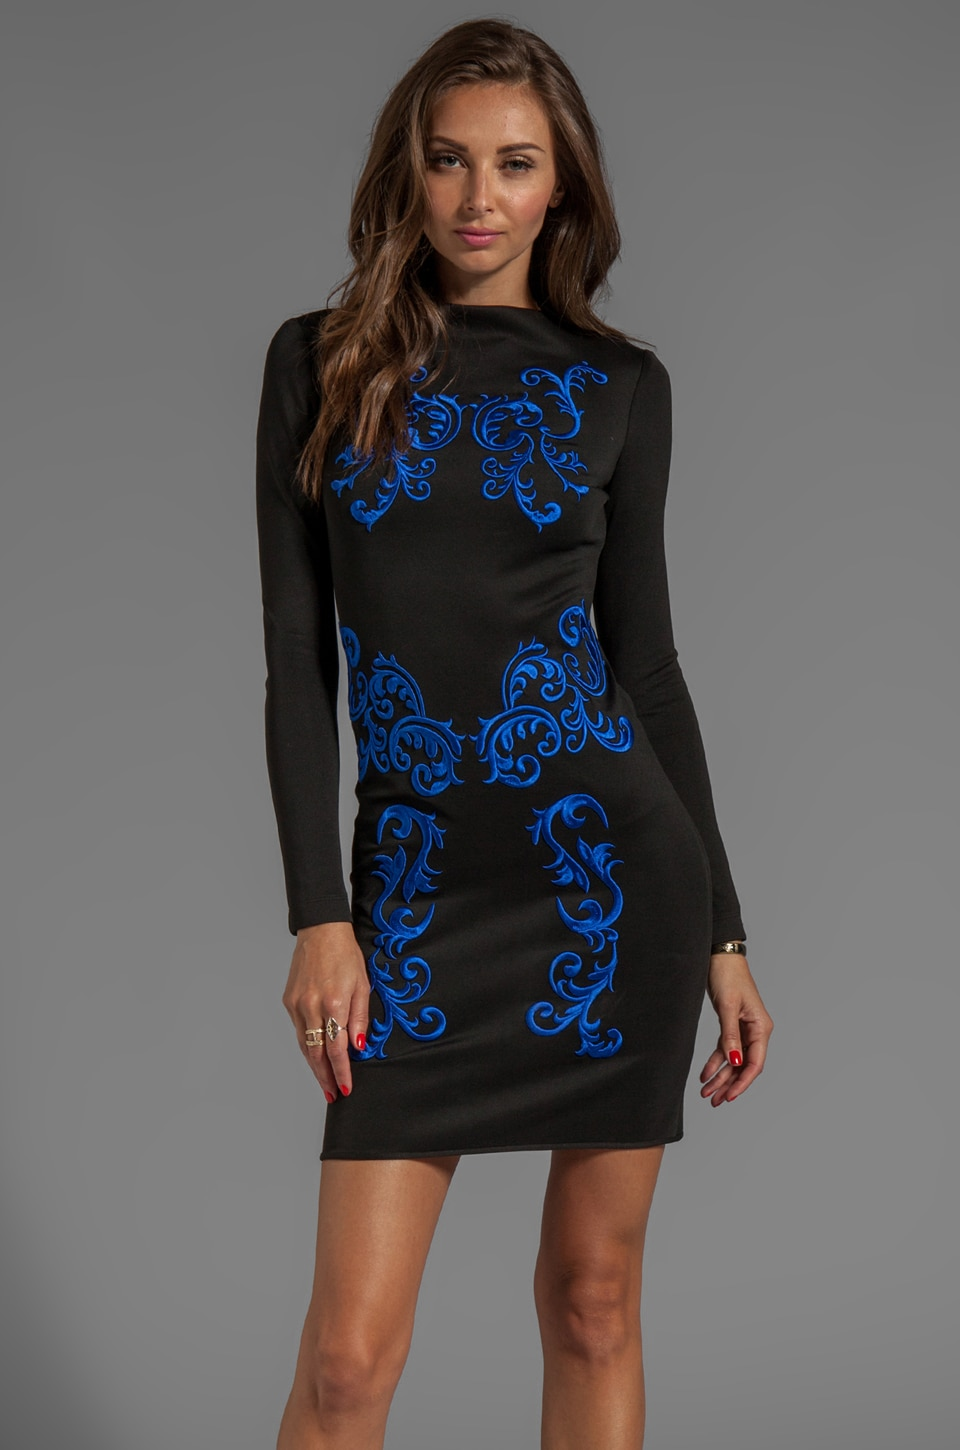 Clover Canyon Embroidery Neoprene Dress in Black/Cobalt